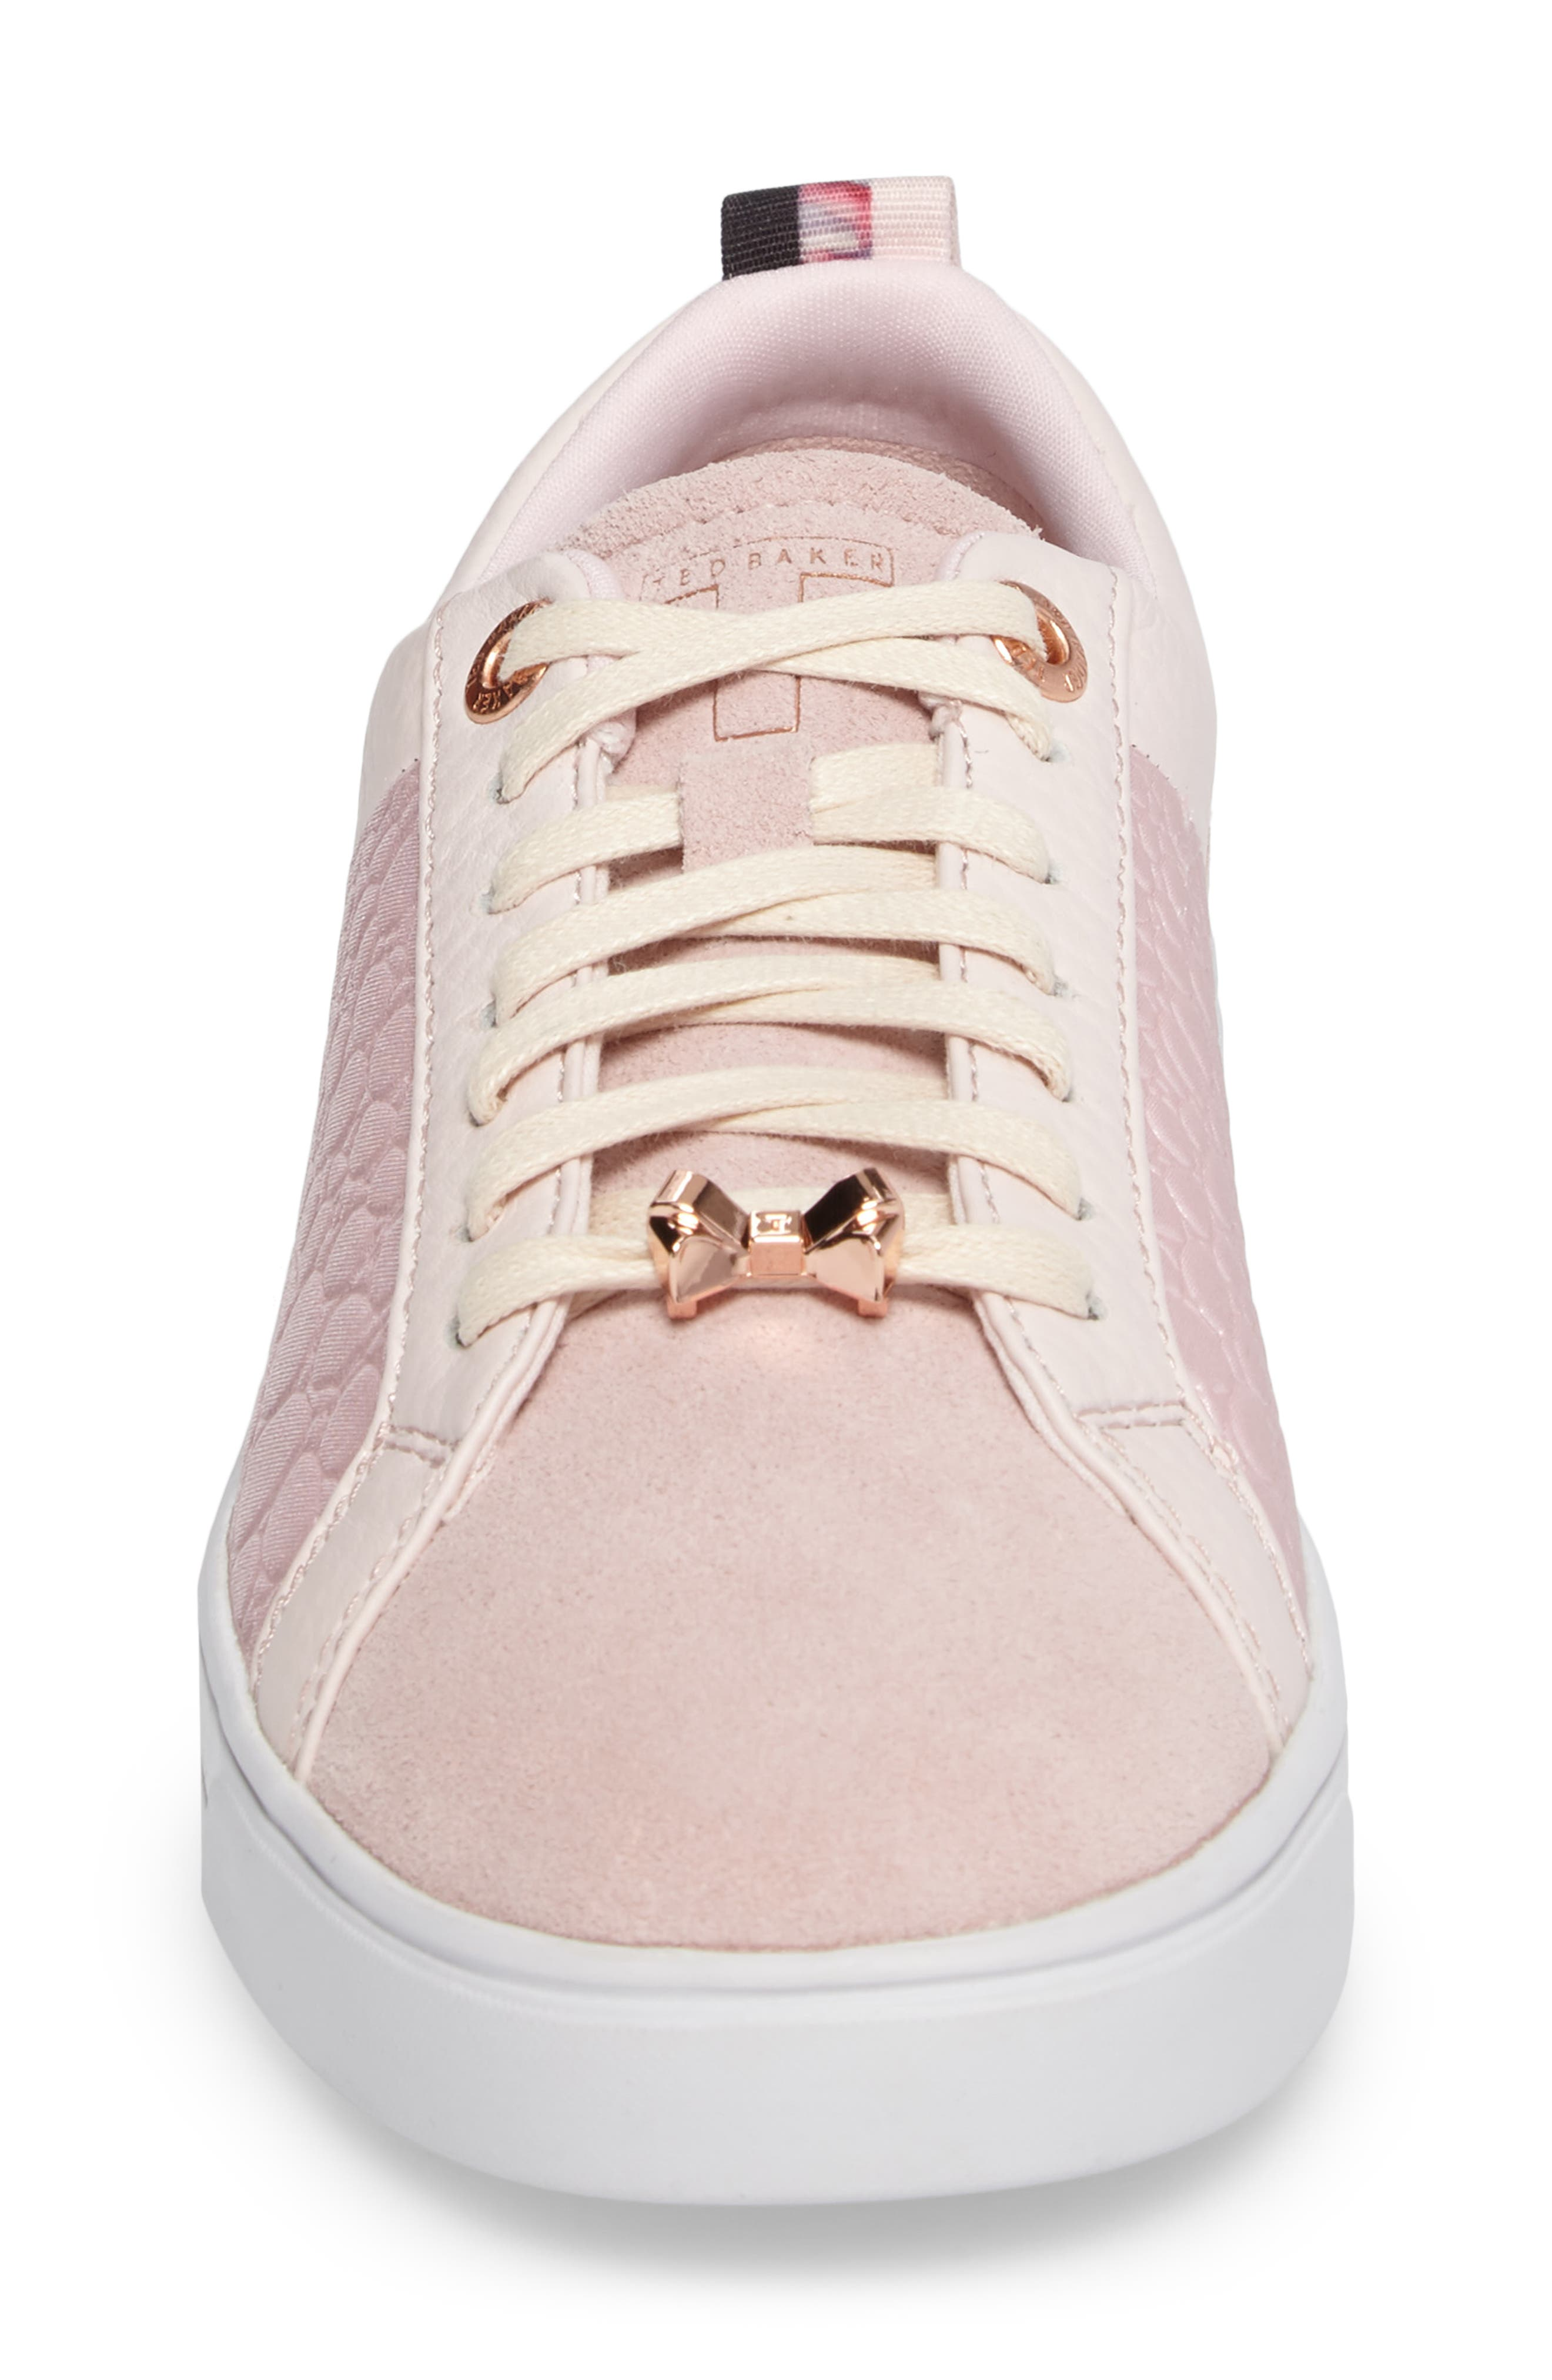 Kulei Sneaker,                             Alternate thumbnail 4, color,                             Light Pink Leather